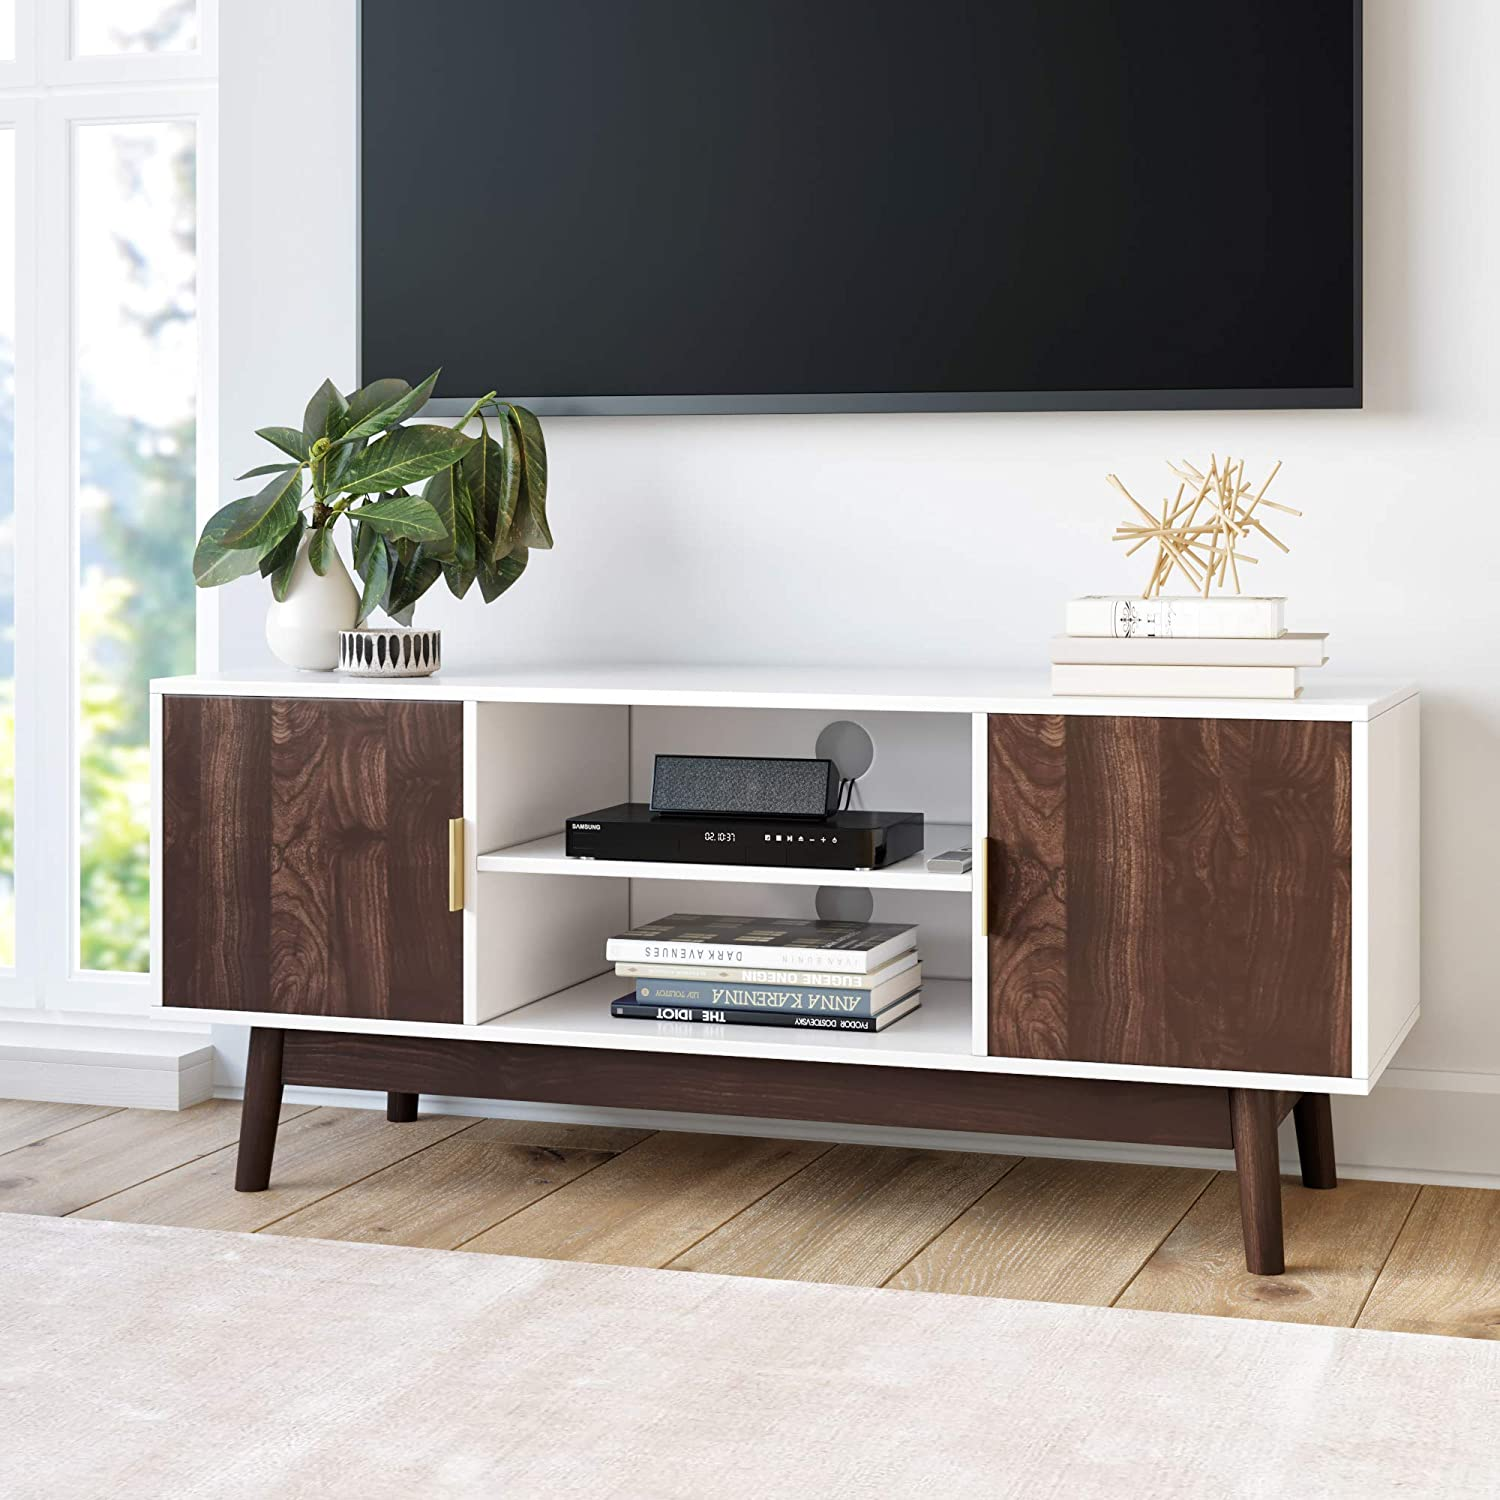 Nathan James 74402 Wesley Scandinavian TV Stand Media Console with Wooden Frame and Cabinet Doors, White/Walnut